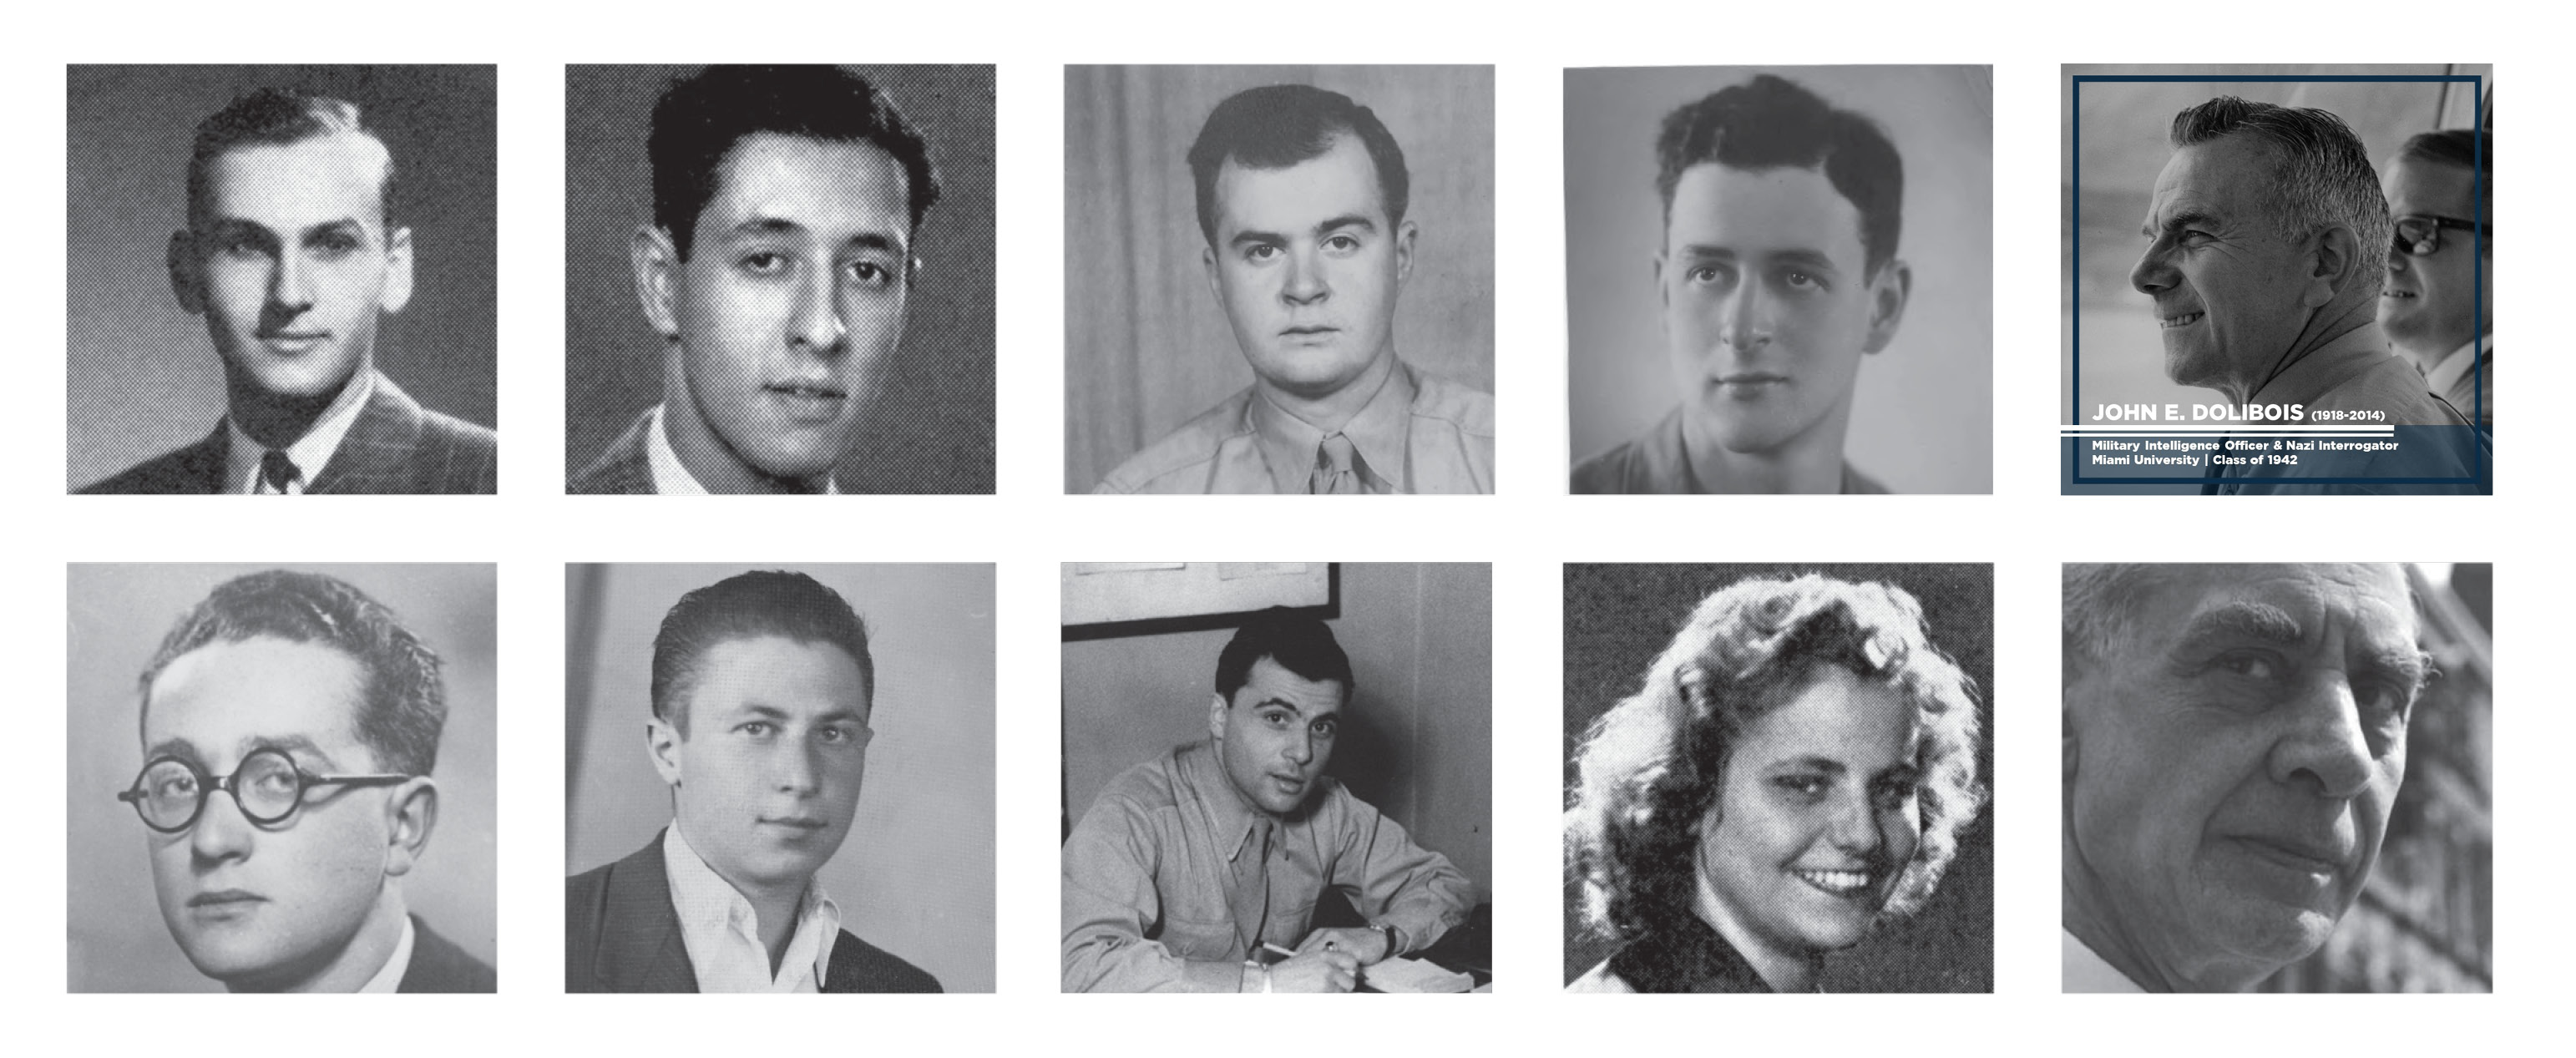 Nine black and white portraits of the alumni and faculty featured in the exhibition Bearing Witness. John E. Dolibois' image is outlined in blue with the text -  John E. Dolibois (1918—2014) Military Intelligence Officer and Nazi Interrogator Miami University, Class of 1942 .